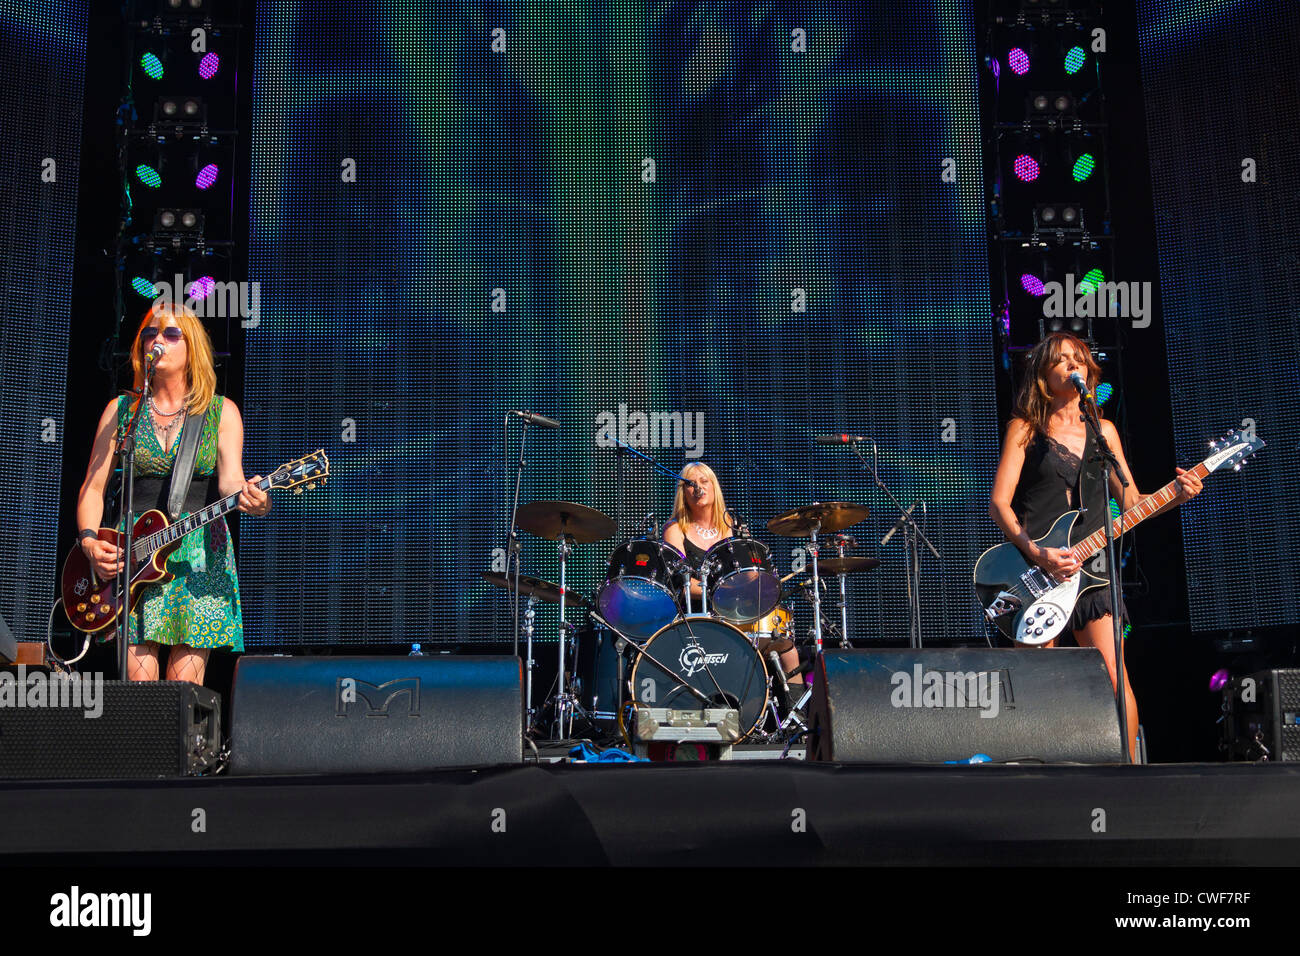 The group The Bangles performing on stage at the Rewind Festival Henley on Thames 2012. PER0245 - Stock Image